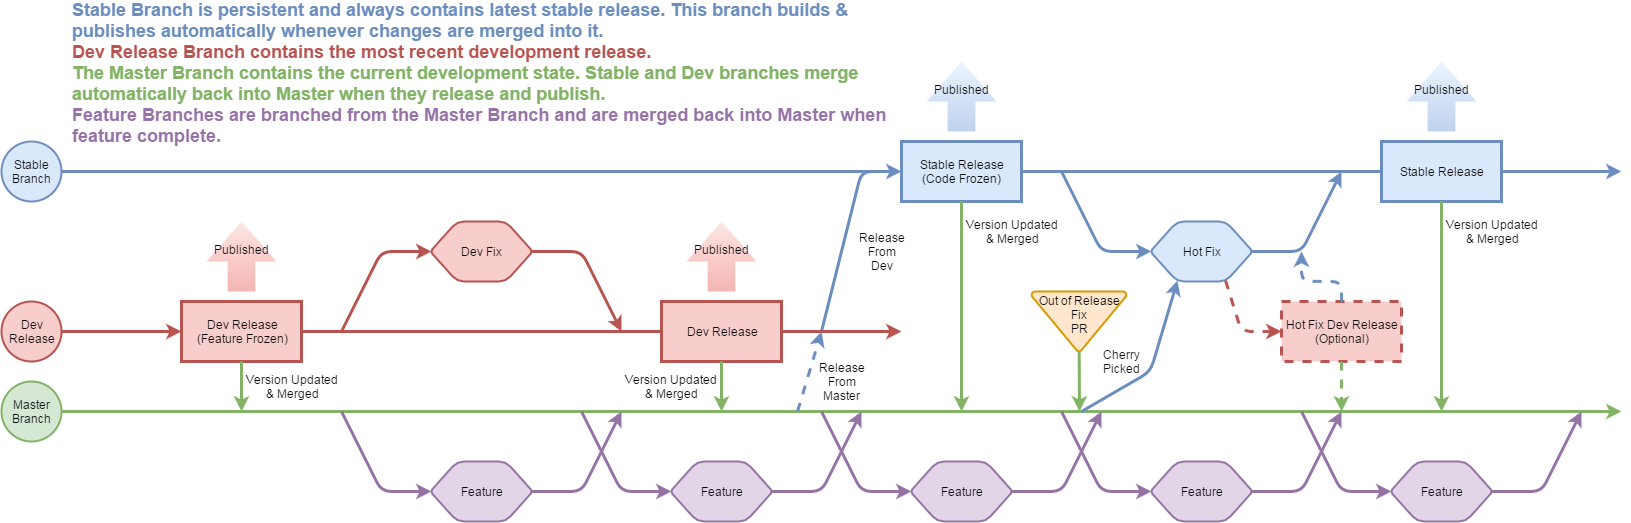 Branching and Release Flowchart